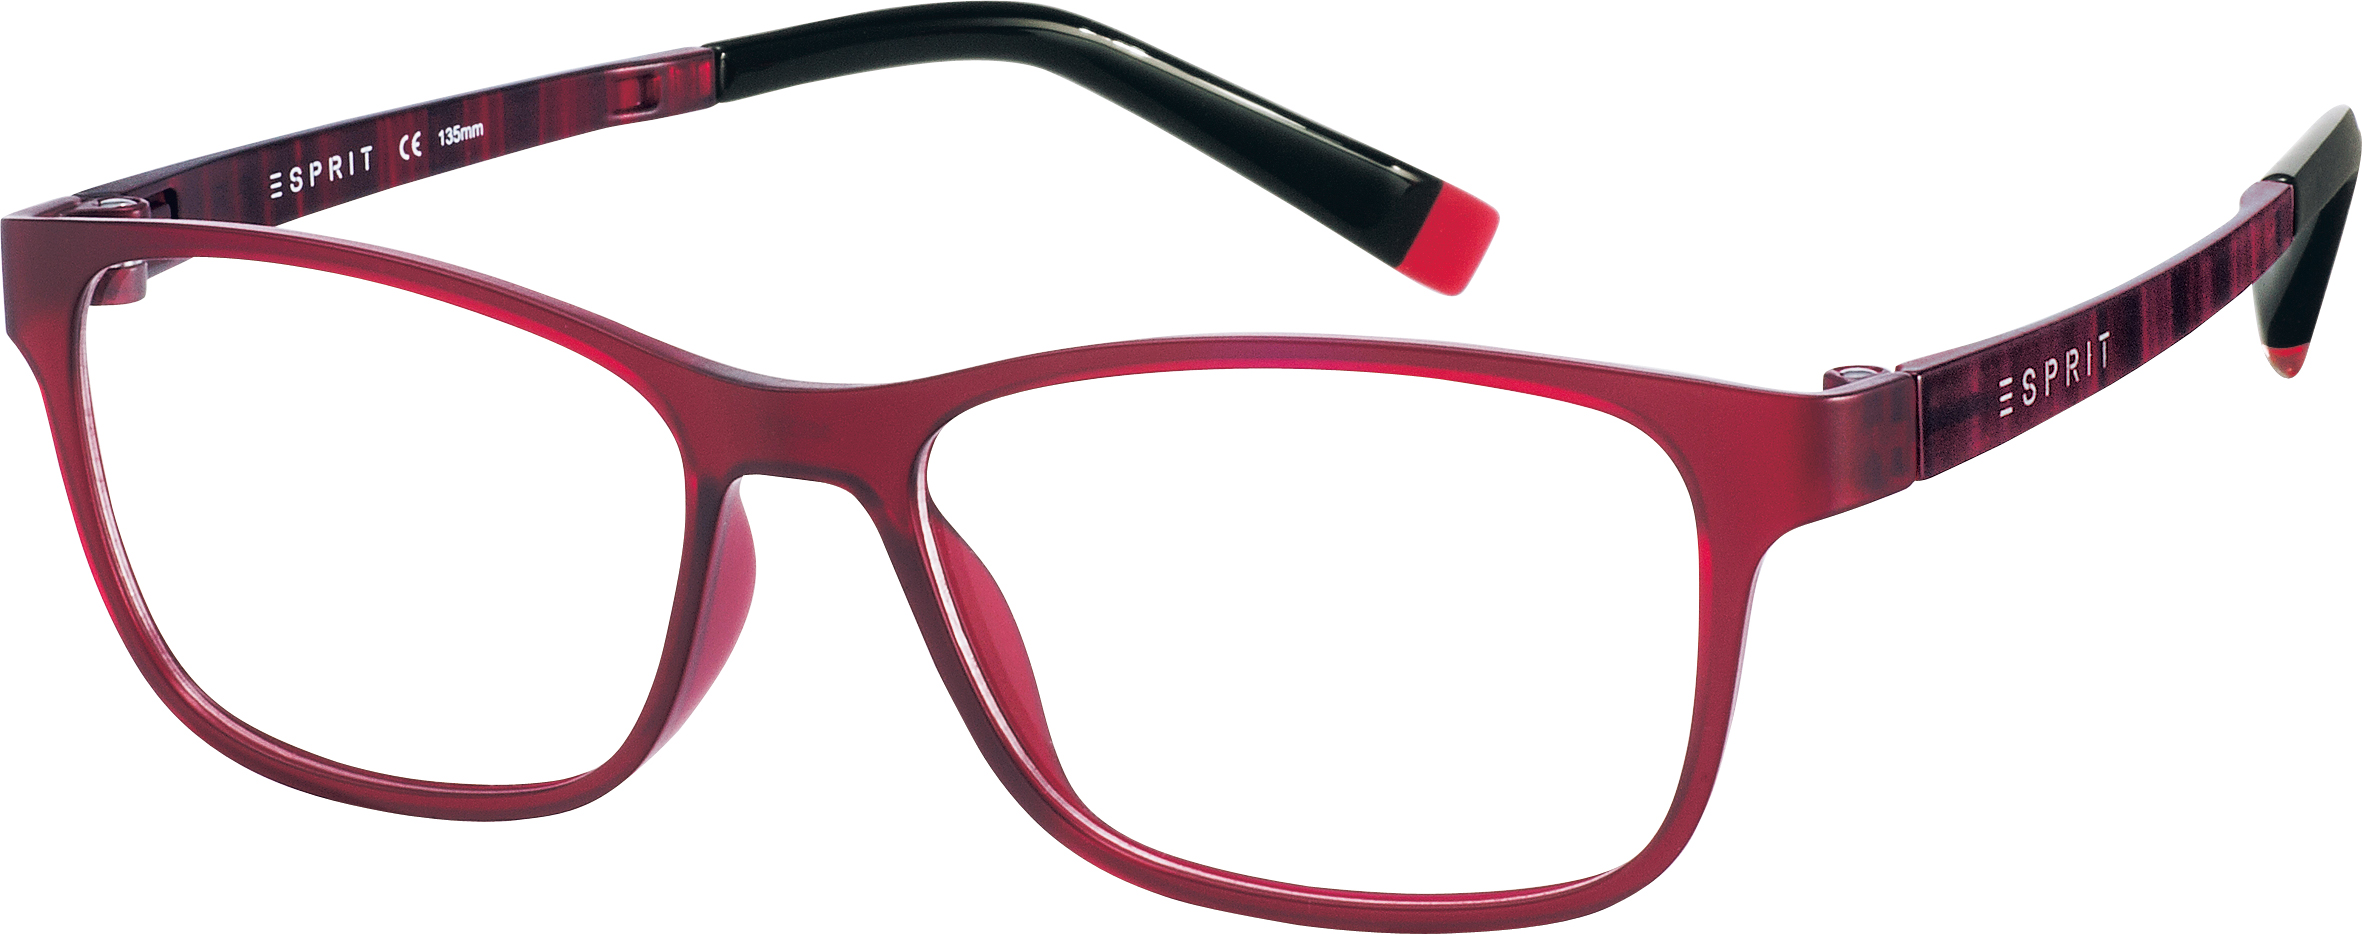 Esprit Glasses Frames Catalogue : Esprit eyewear Products - Optical